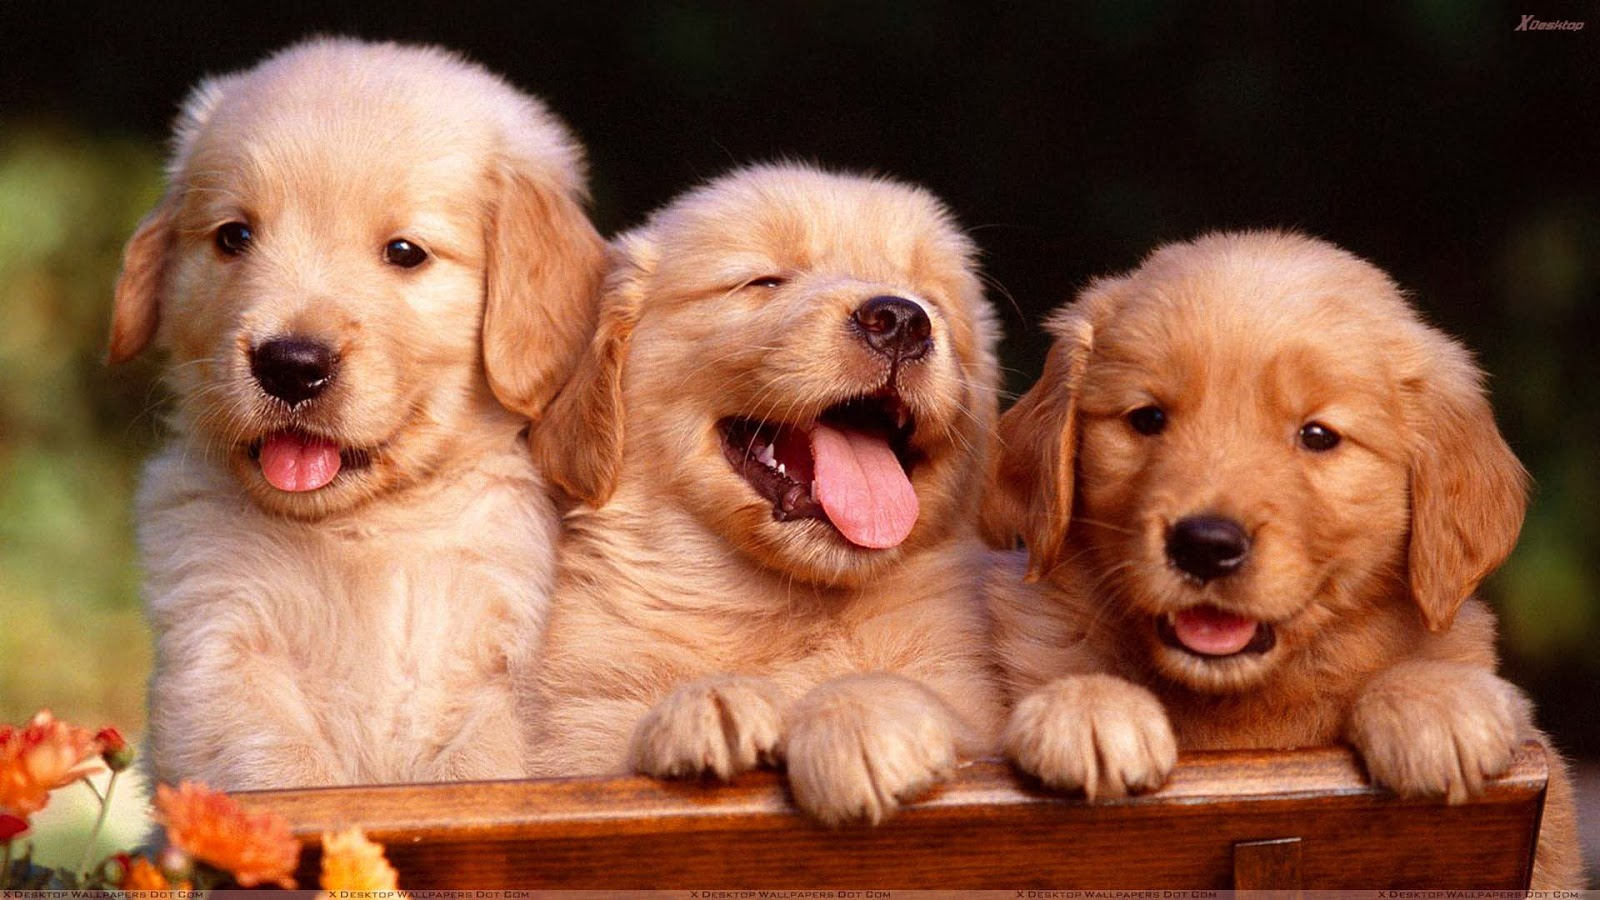 Free Hd Wallpaper Cute Golden Retriever Puppies Wallpaper Image